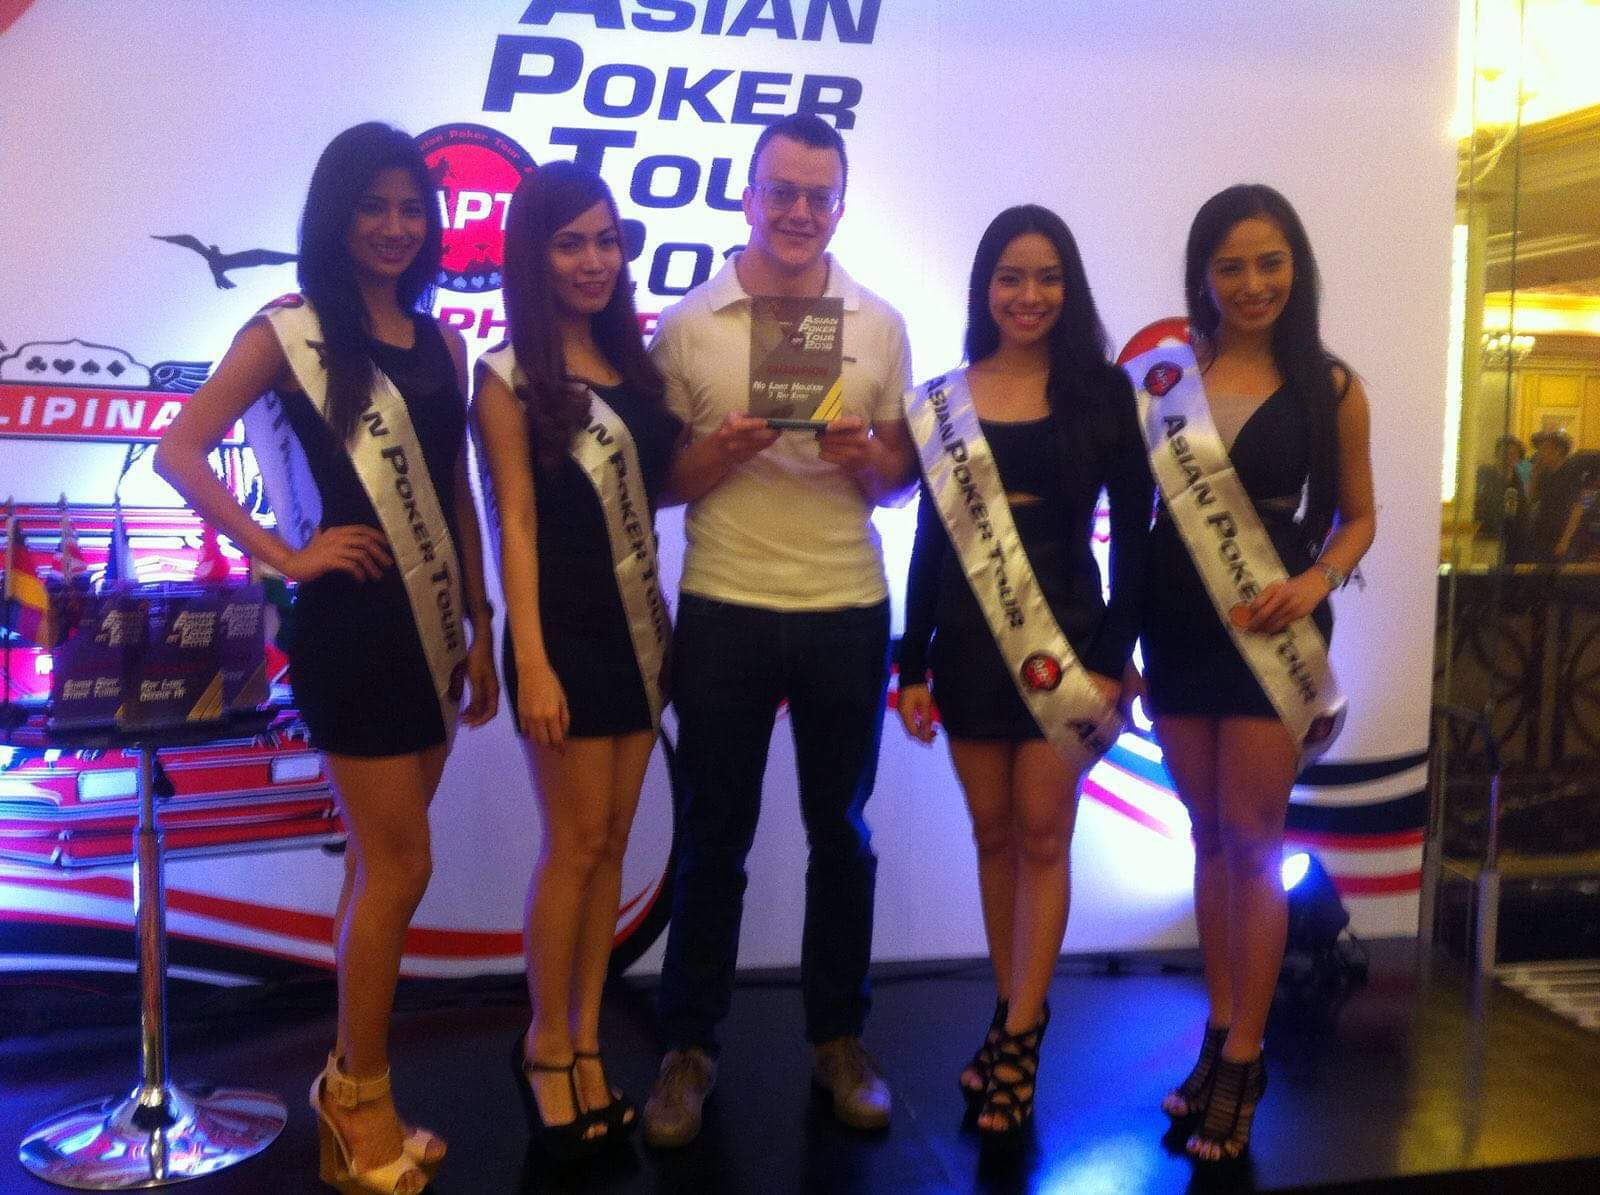 Poker Pro & Coach | 6 Years of Experience | Courses in Tournament Poker, Cash Game, & Live Poker 2